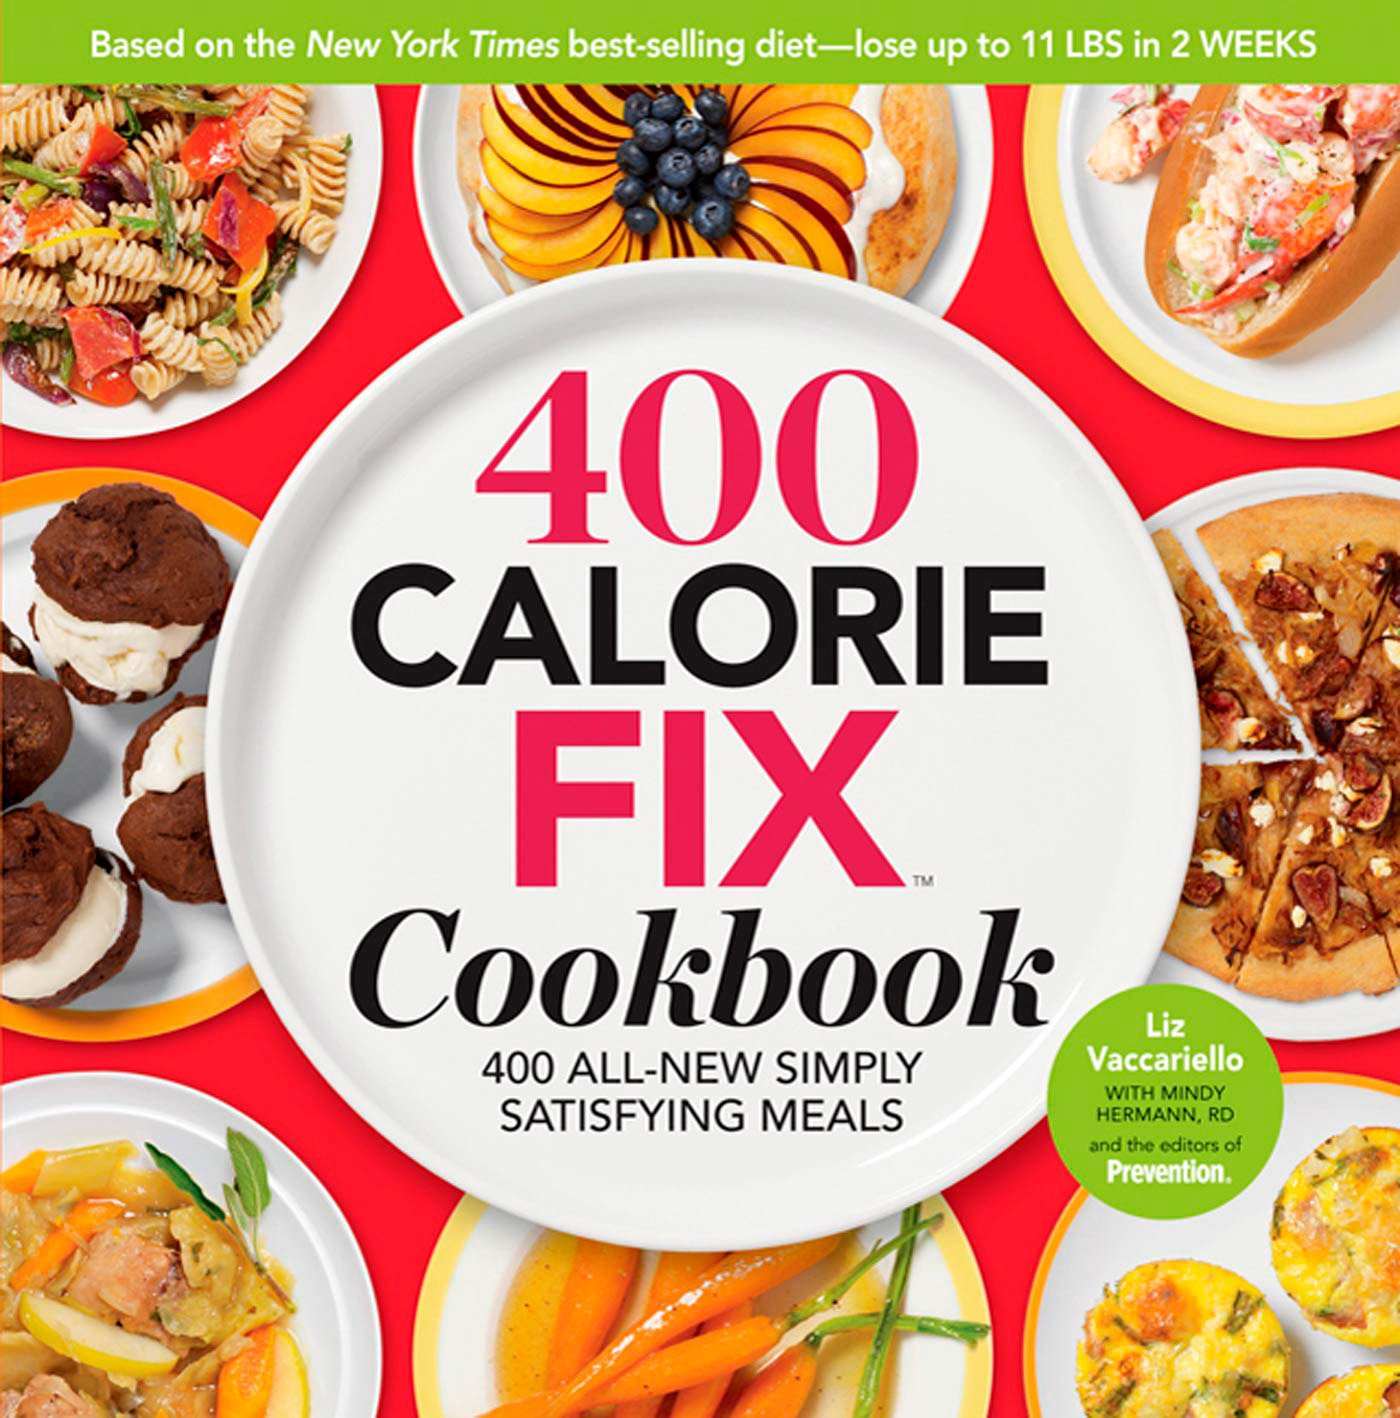 The 400 Calorie Fix Cookbook: 400 All-New Simply Satisfying Meals PDF